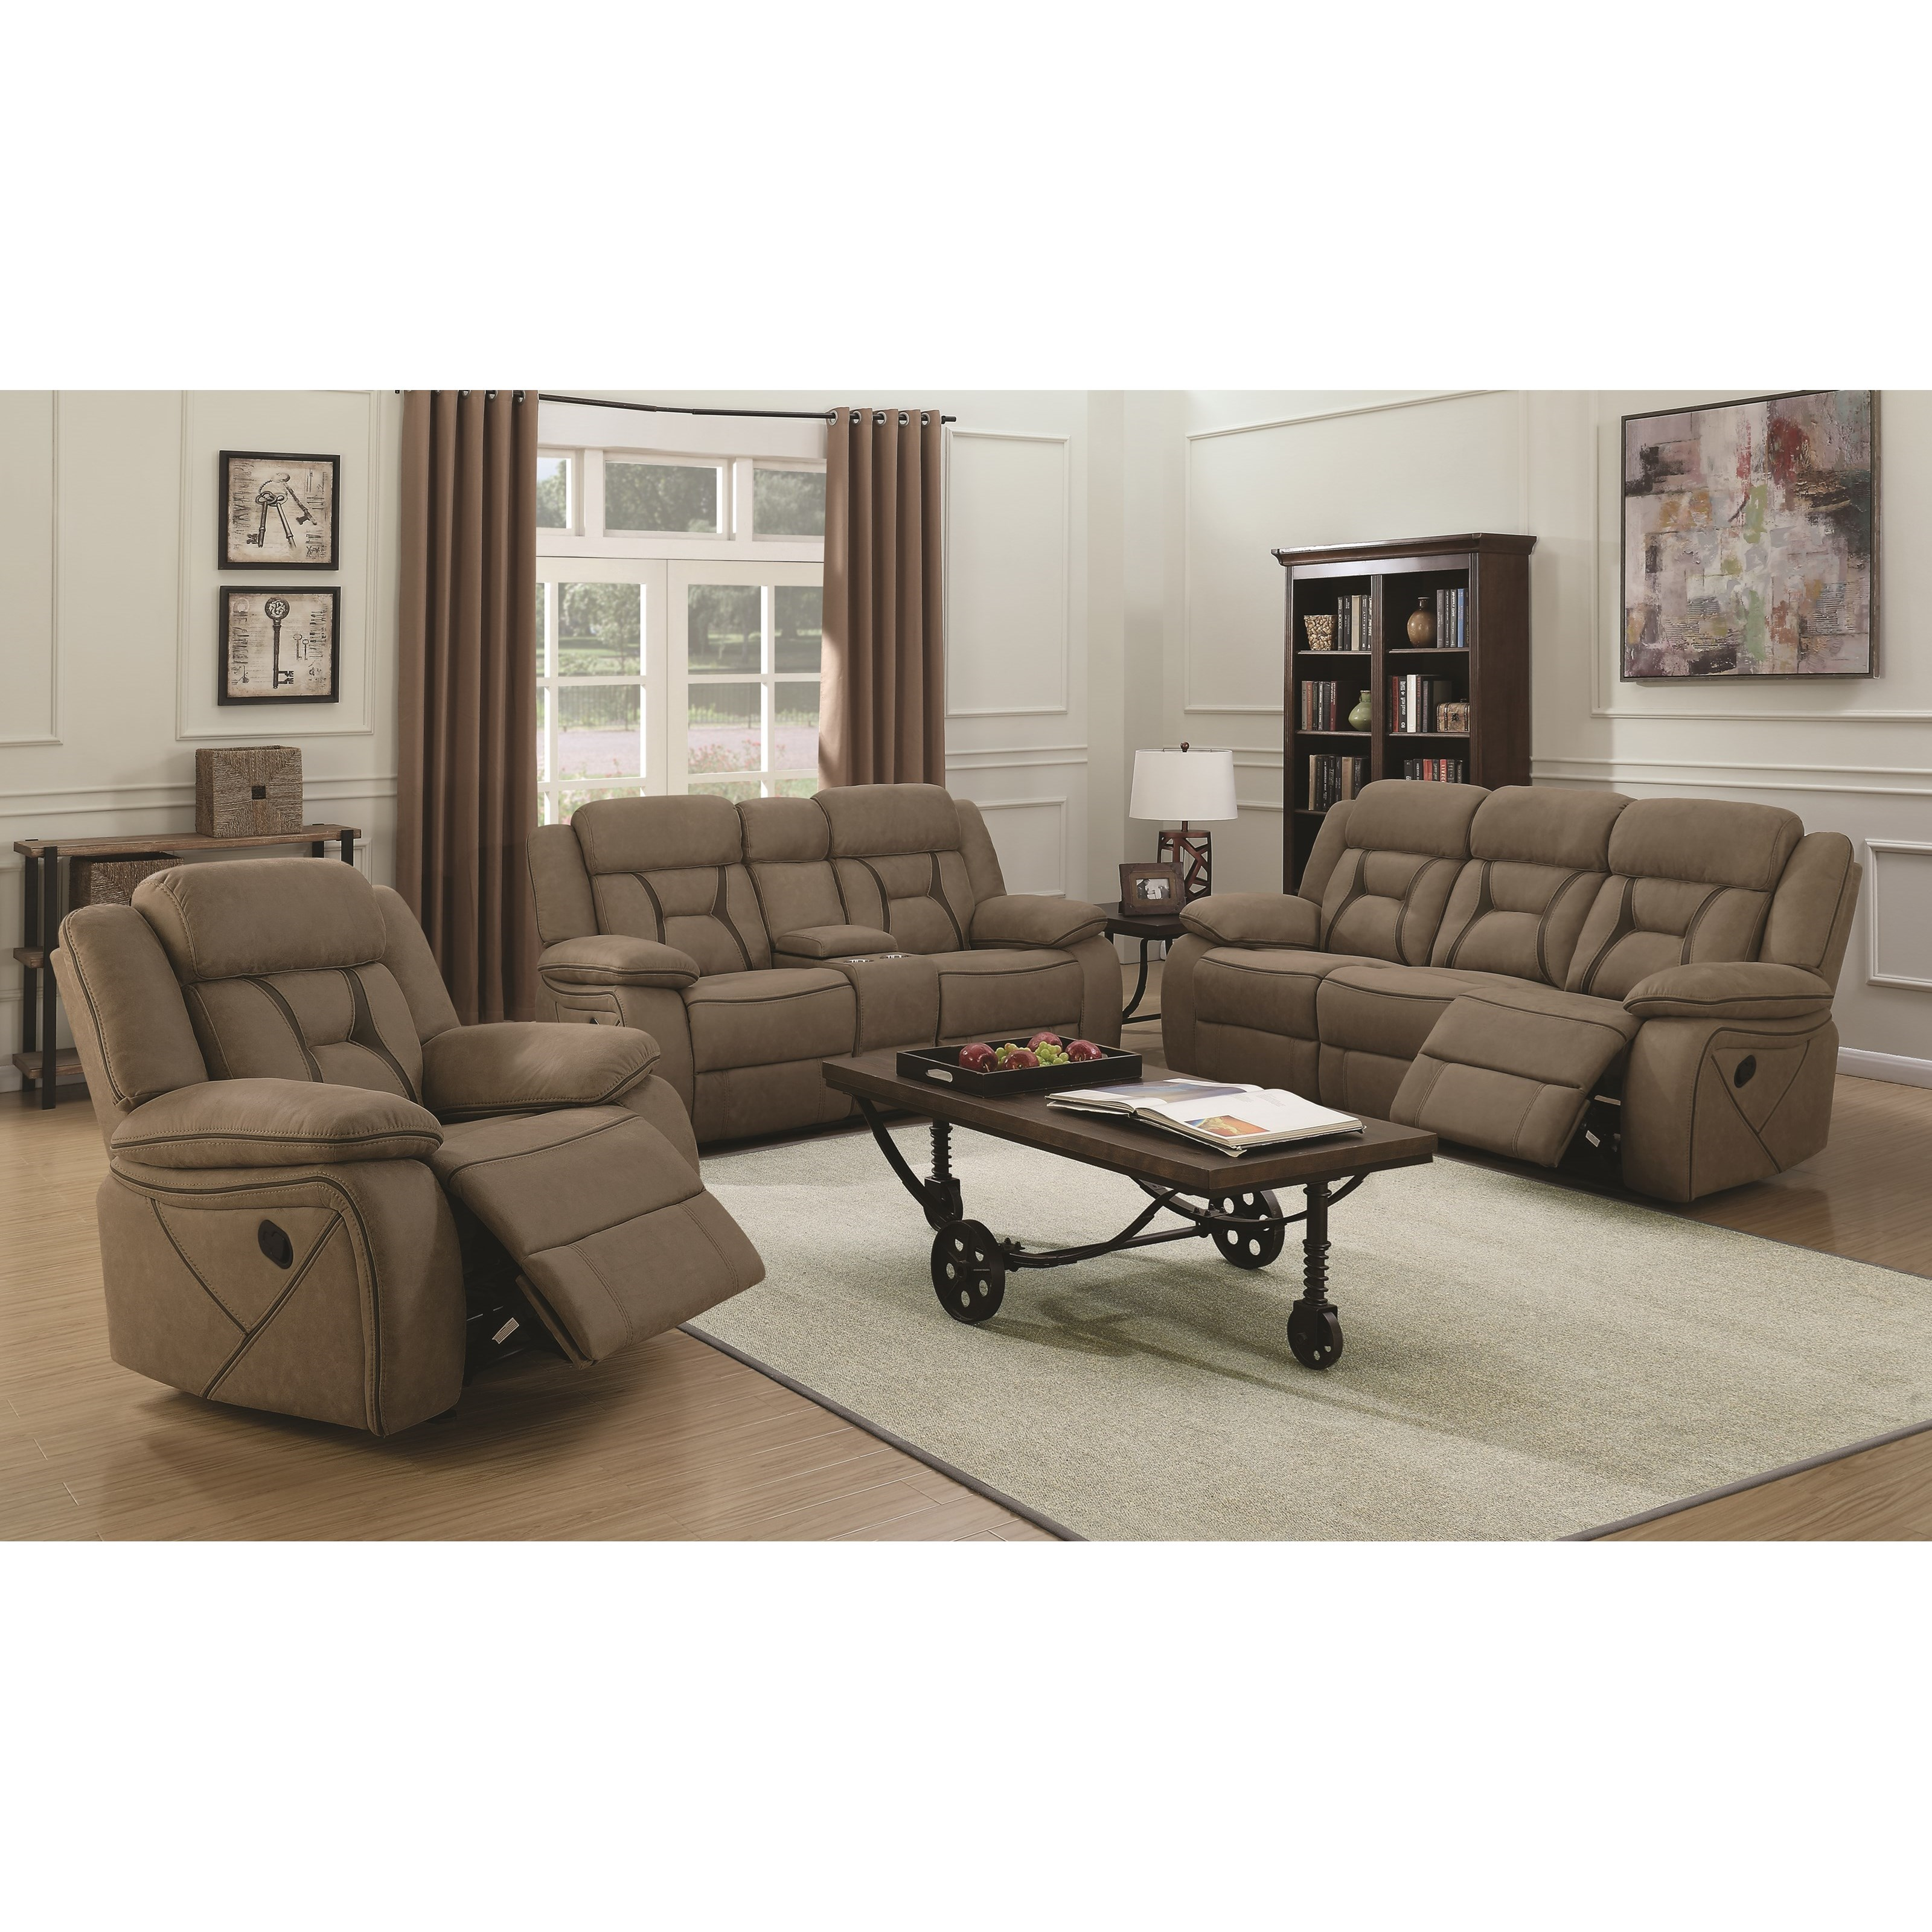 Coaster houston reclining living room group value city for Living room furniture groups